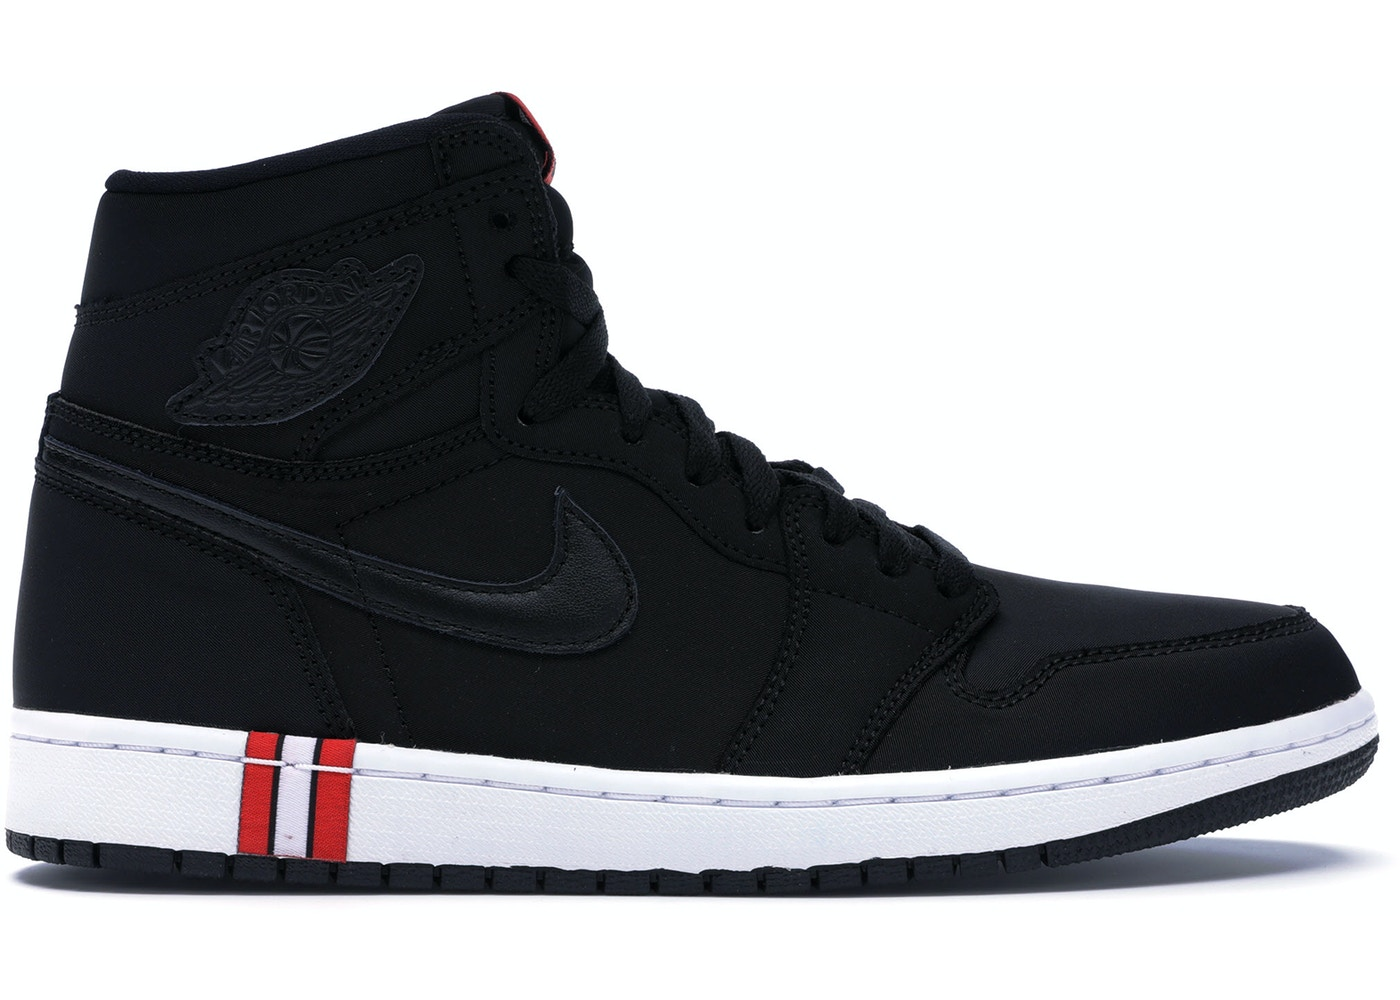 reputable site 41e3c db771 Jordan 1 Retro High Paris Saint Germain - AR3254-001